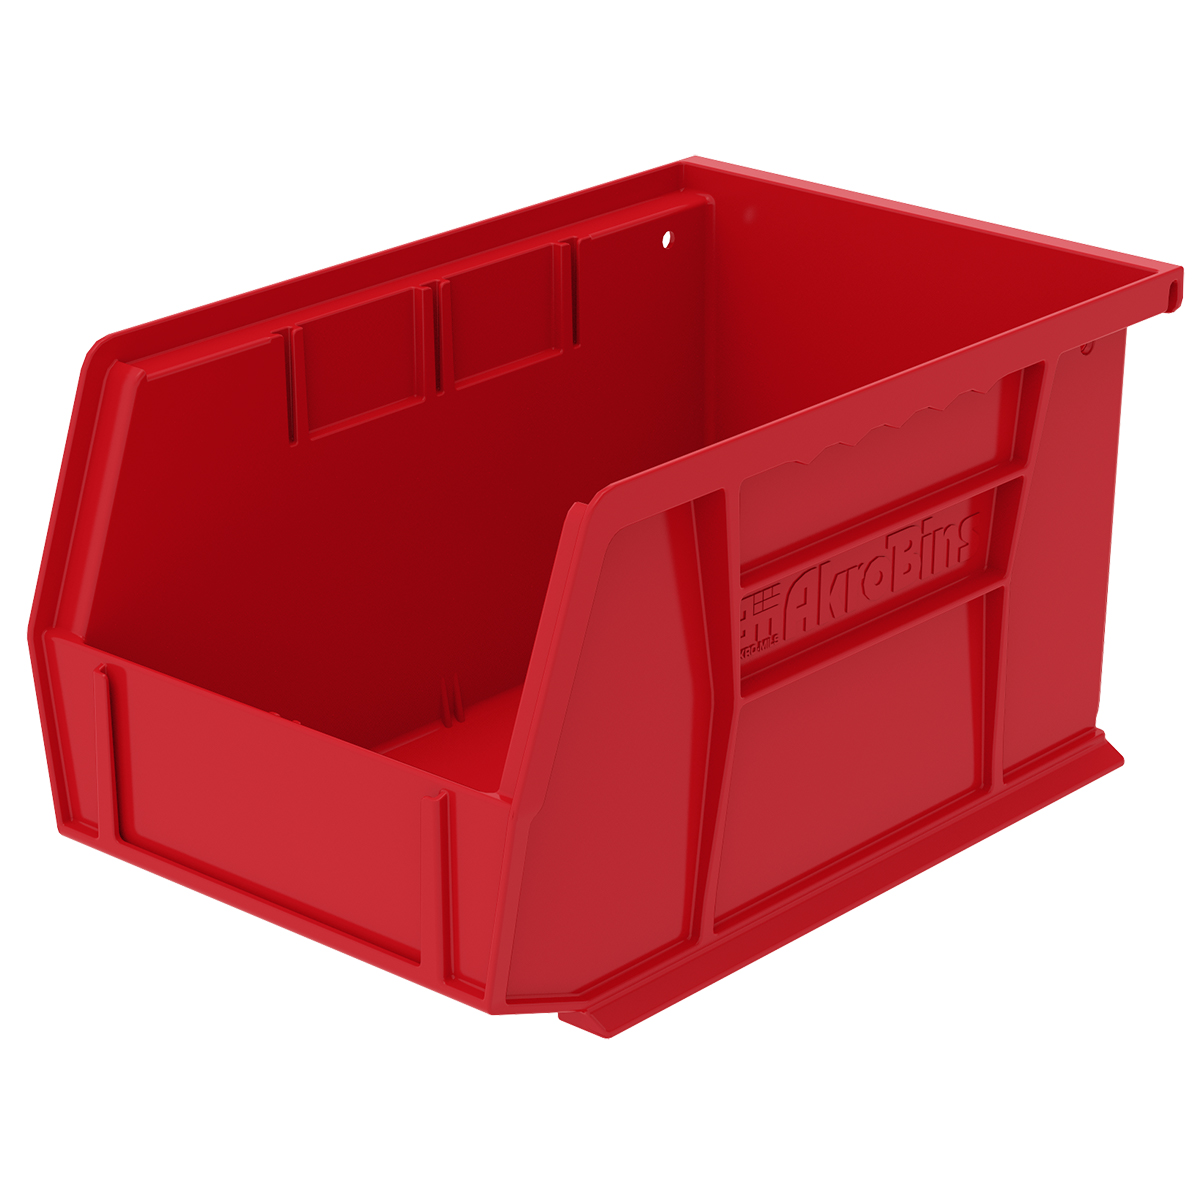 AkroBin 9-1/4 x 6 x 5, Red (30237RED).  This item sold in carton quantities of 12.